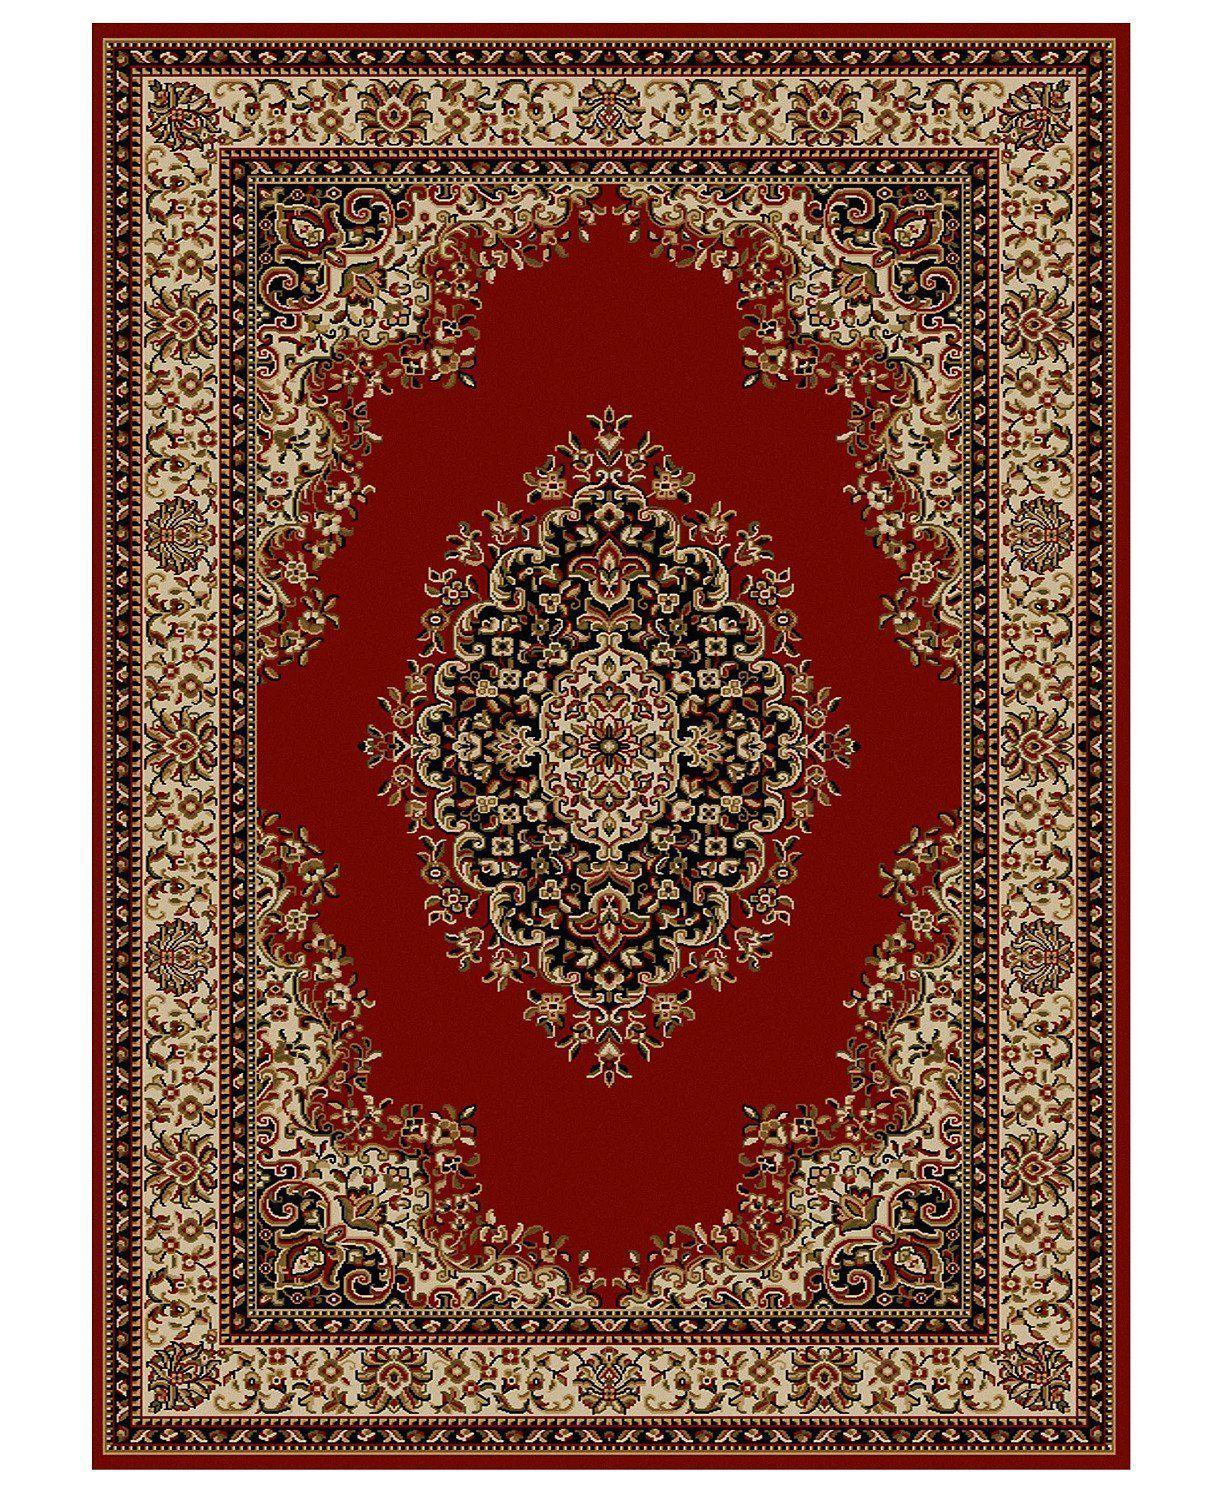 Roma Kerman Red-Area Rugs-KM Home-3 Piece Set-The Rug Truck